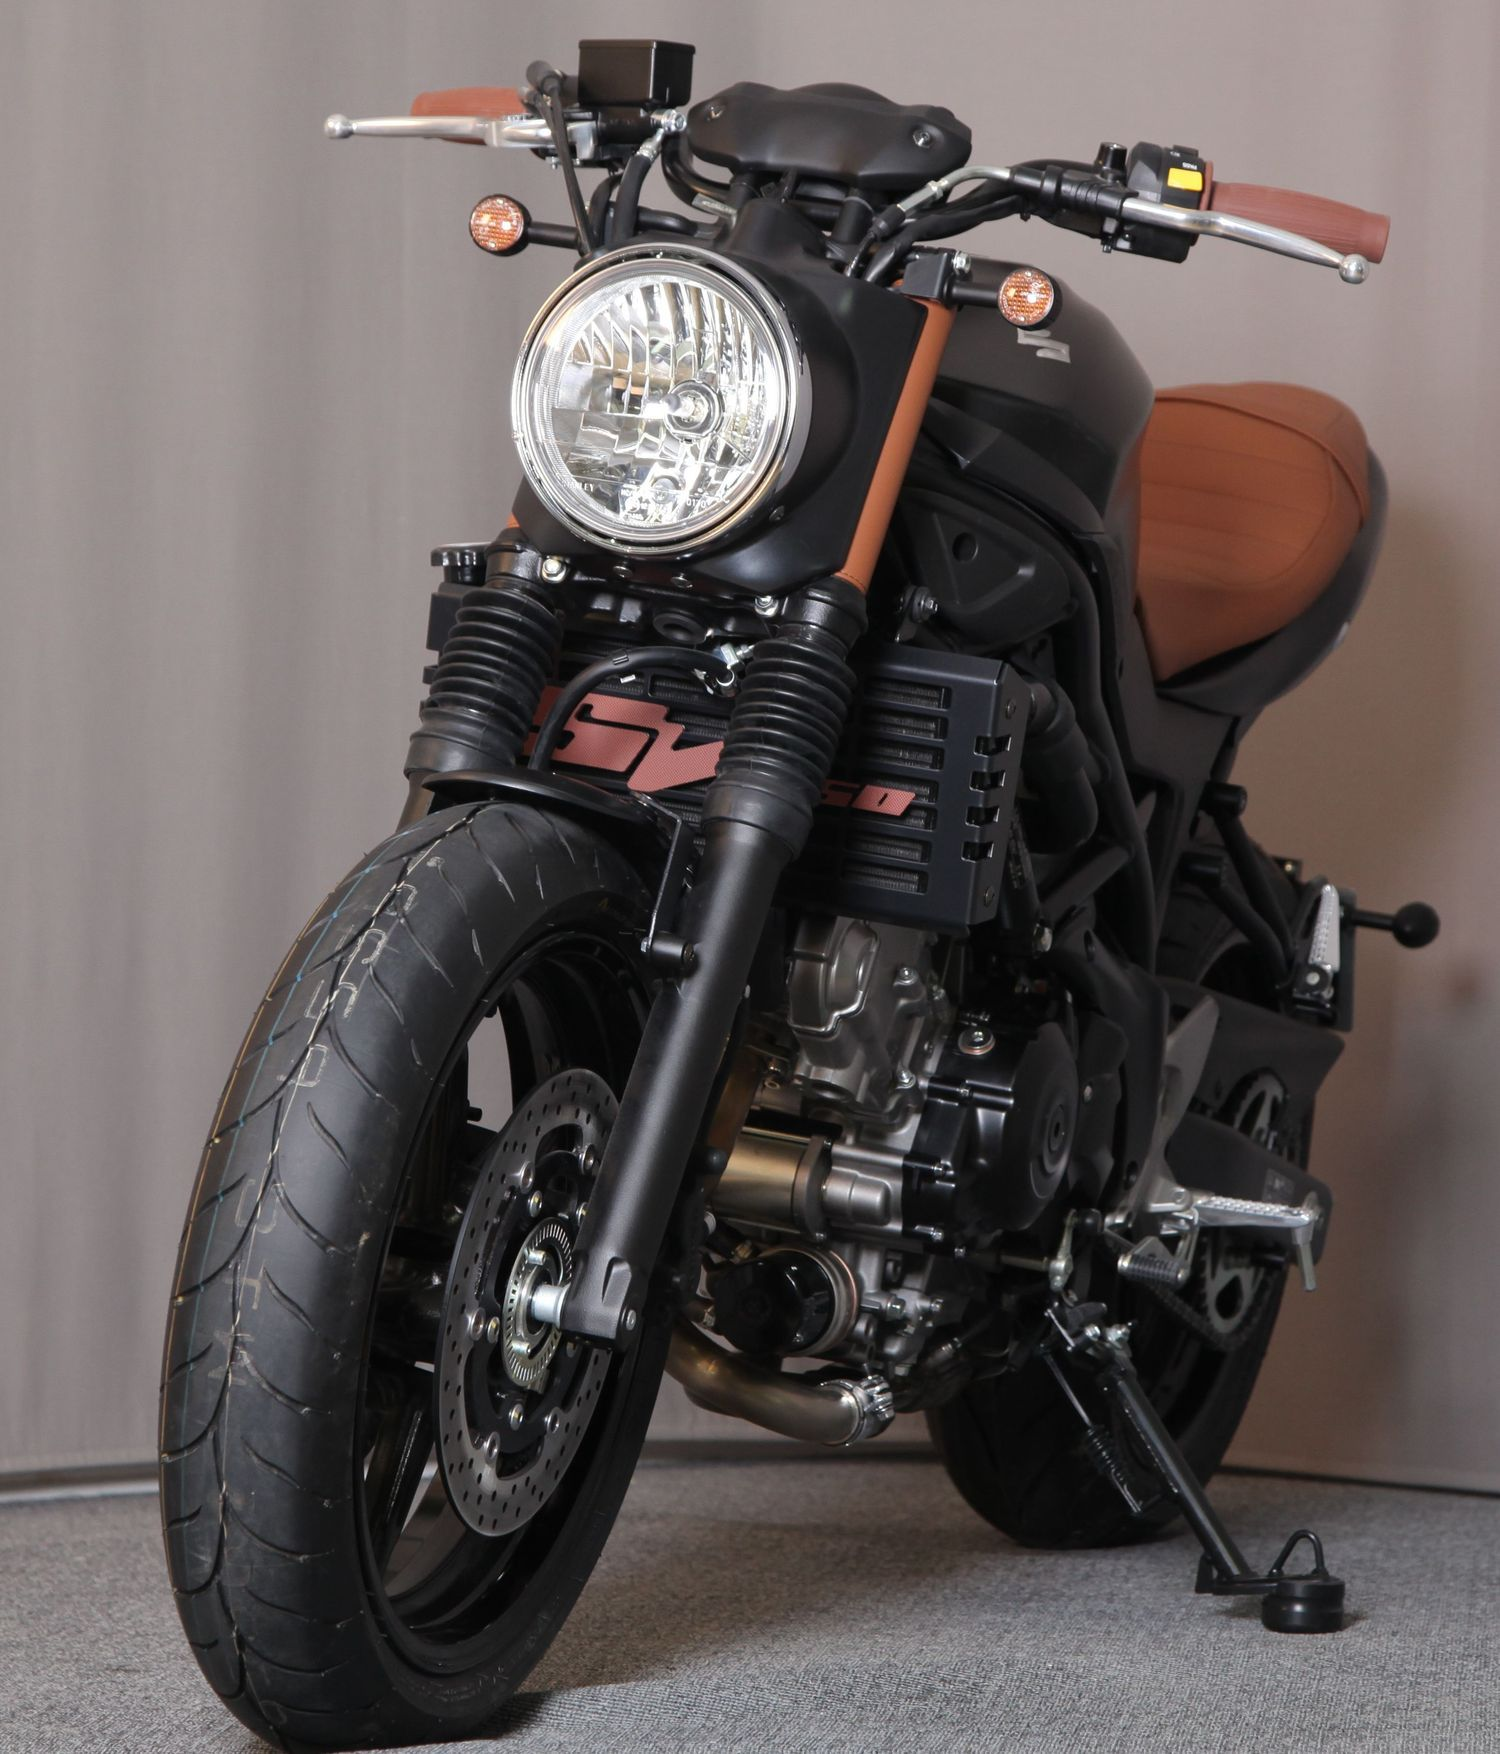 Suzuki SV 650, a road bike with a sporting character